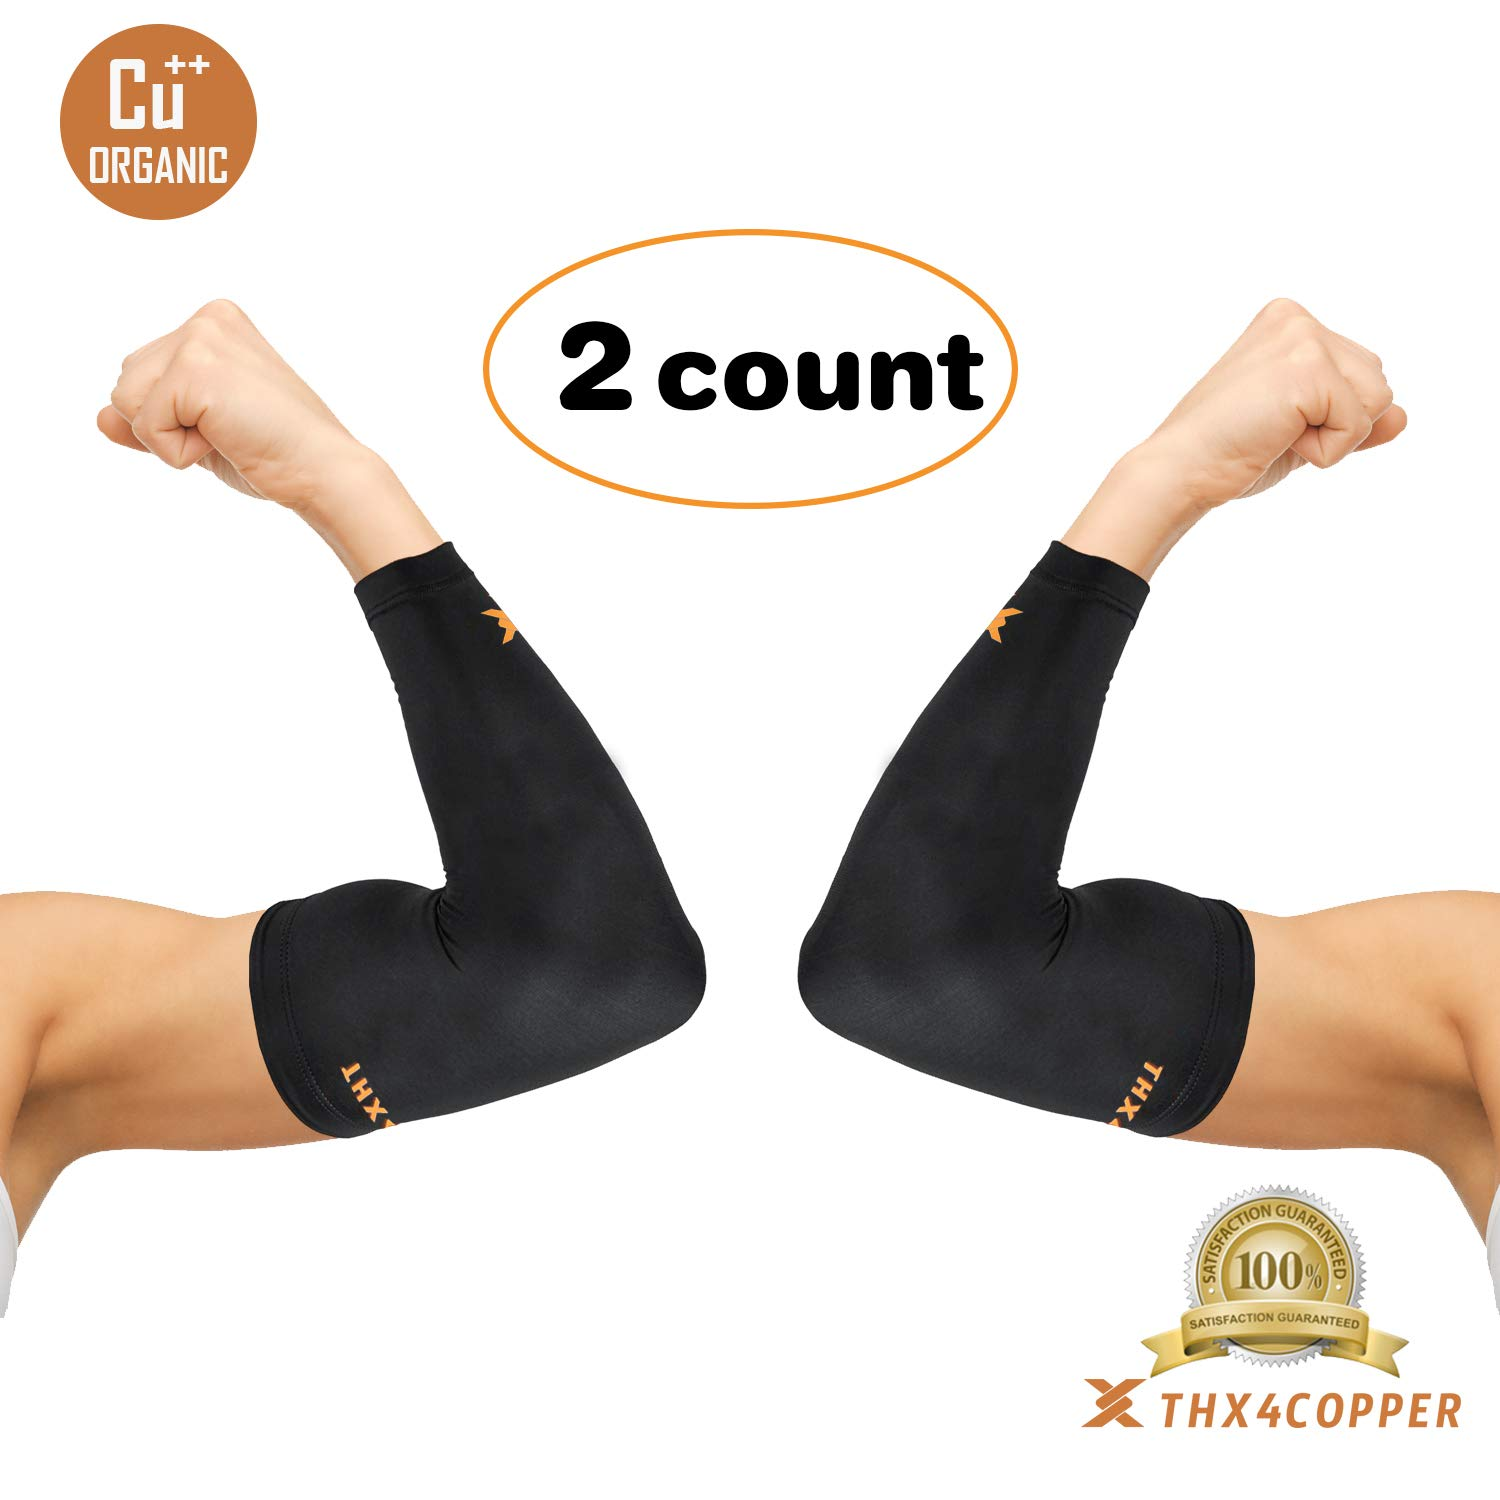 Thx4 Copper Elbow Compression Sleeve(1 Pair) - #1 Copper Infused Support –Guaranteed Recovery Copper Elbow Brace-Idea for Workouts, Sports, Golfers, Tennis Elbow, Arthritis, Tendonitis-Medium